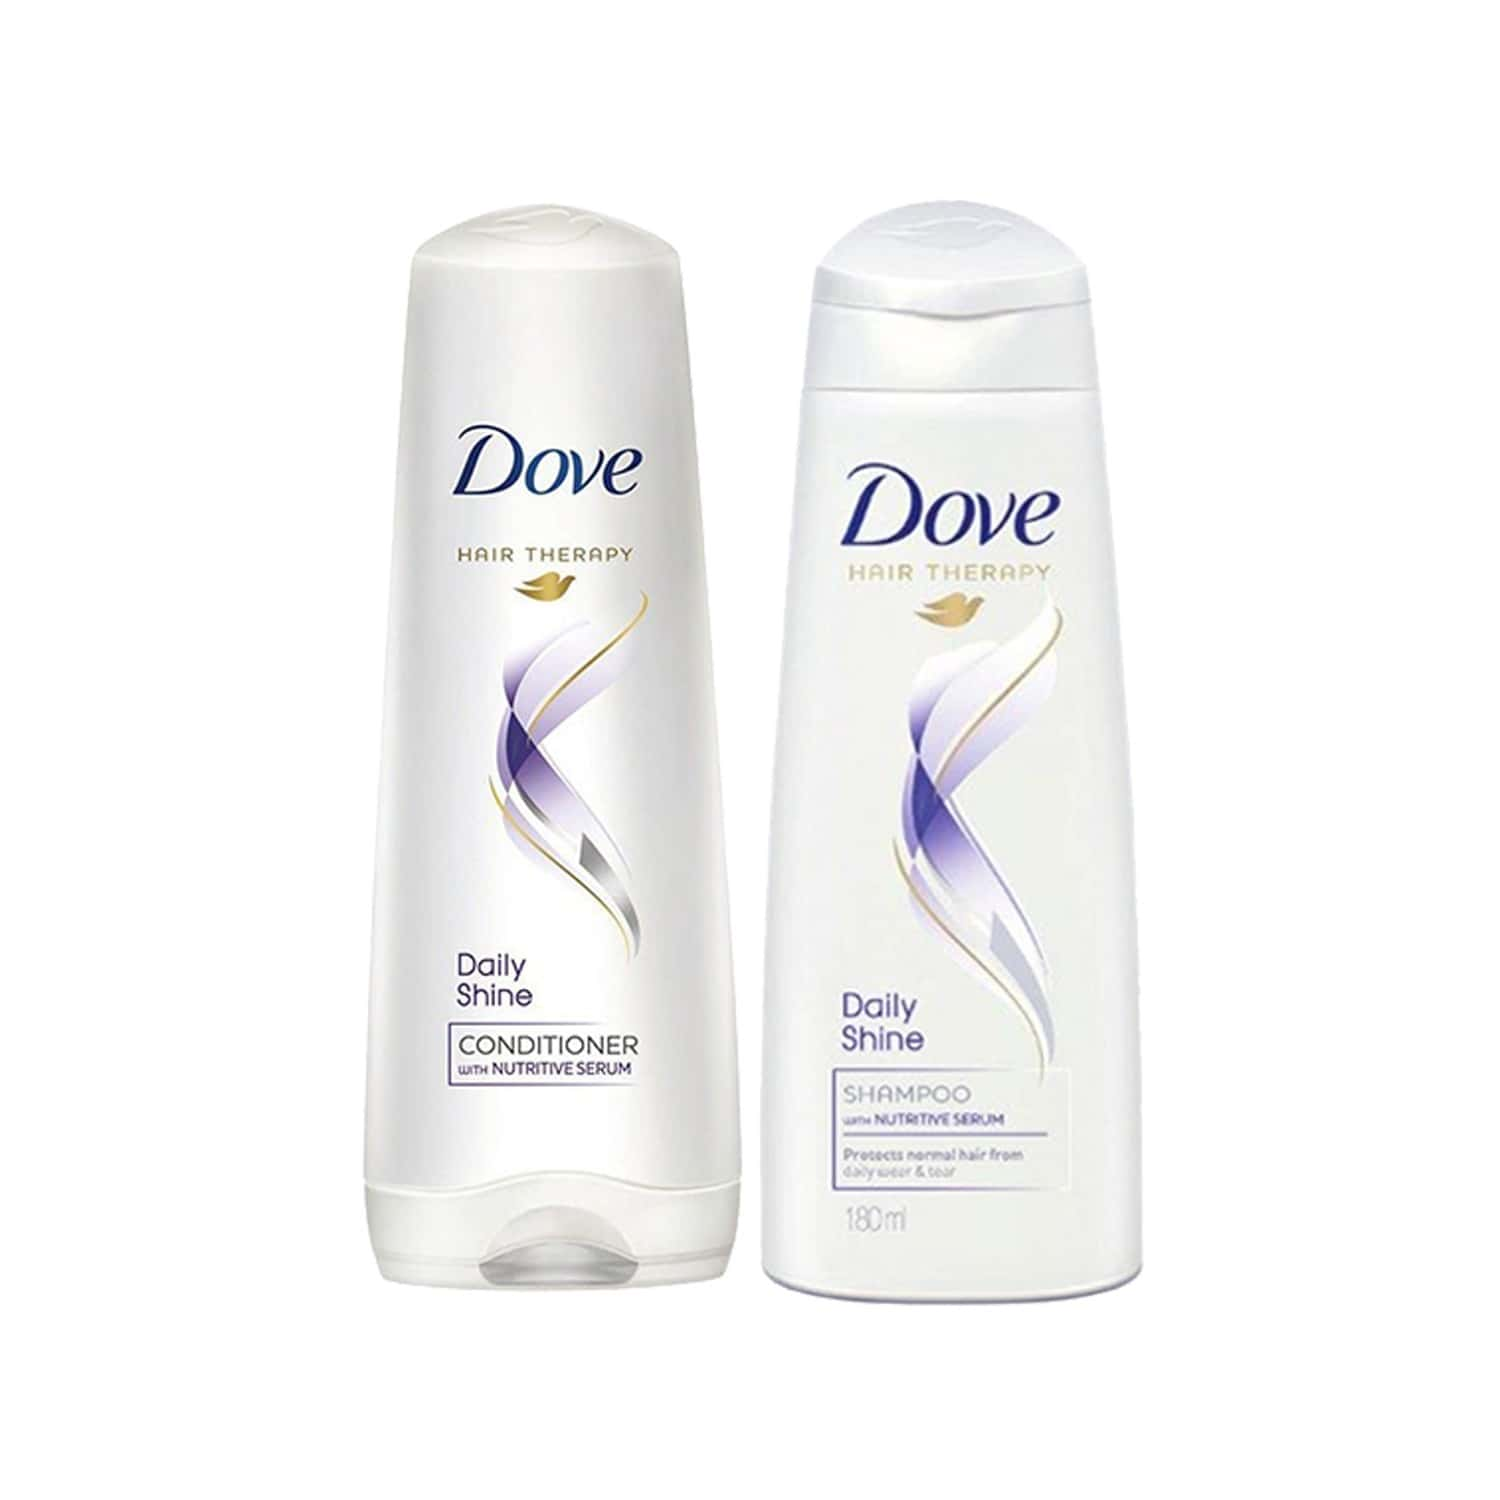 Dove Daily Shine Value Pack (shampoo And Conditioner)